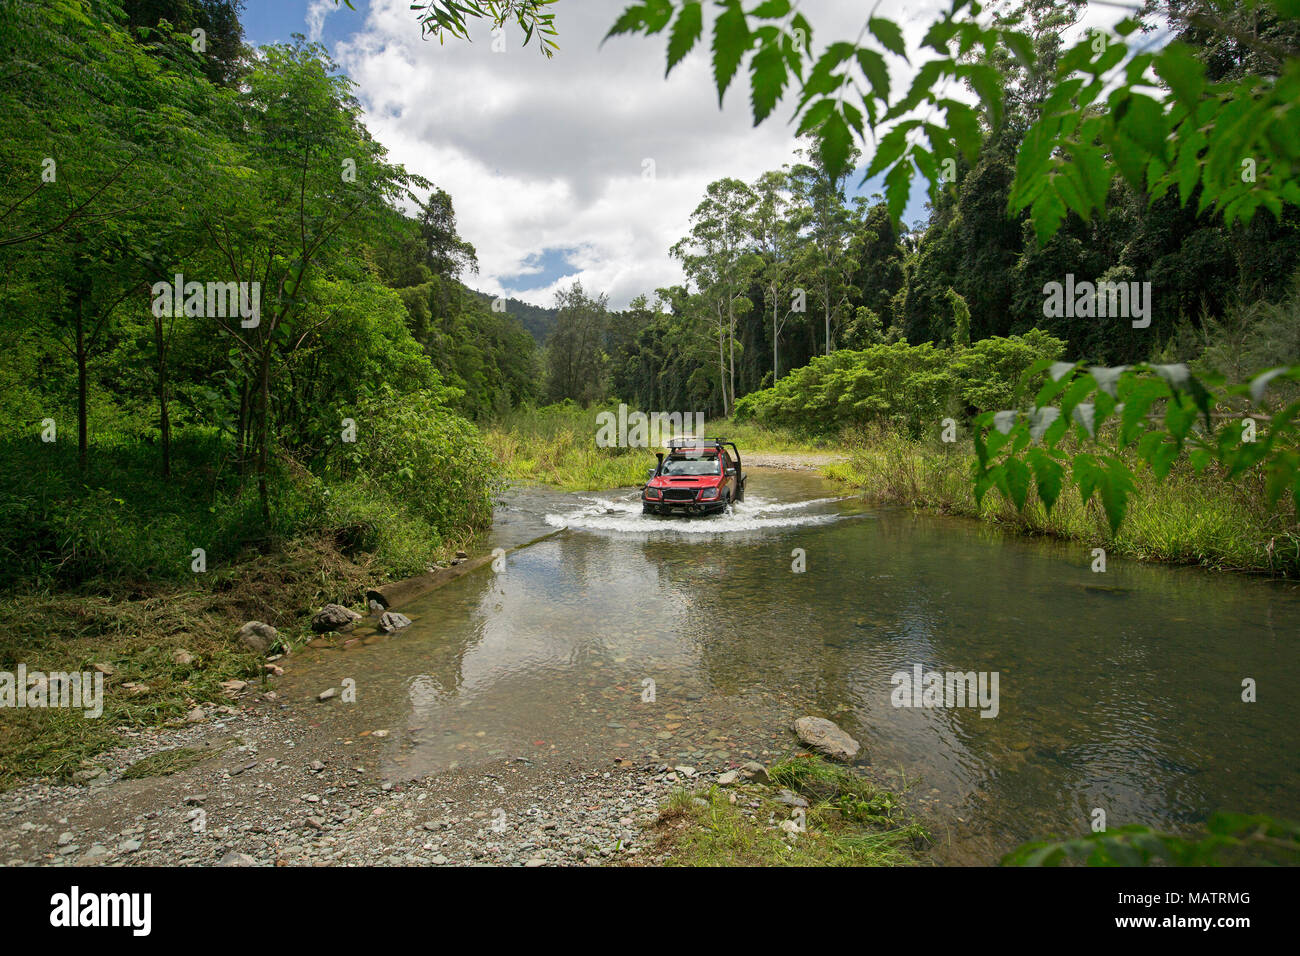 Red four wheel drive vehicle crossing creek hemmed with emerald forests in Conondale Ranges National Park Queensland Australia - Stock Image